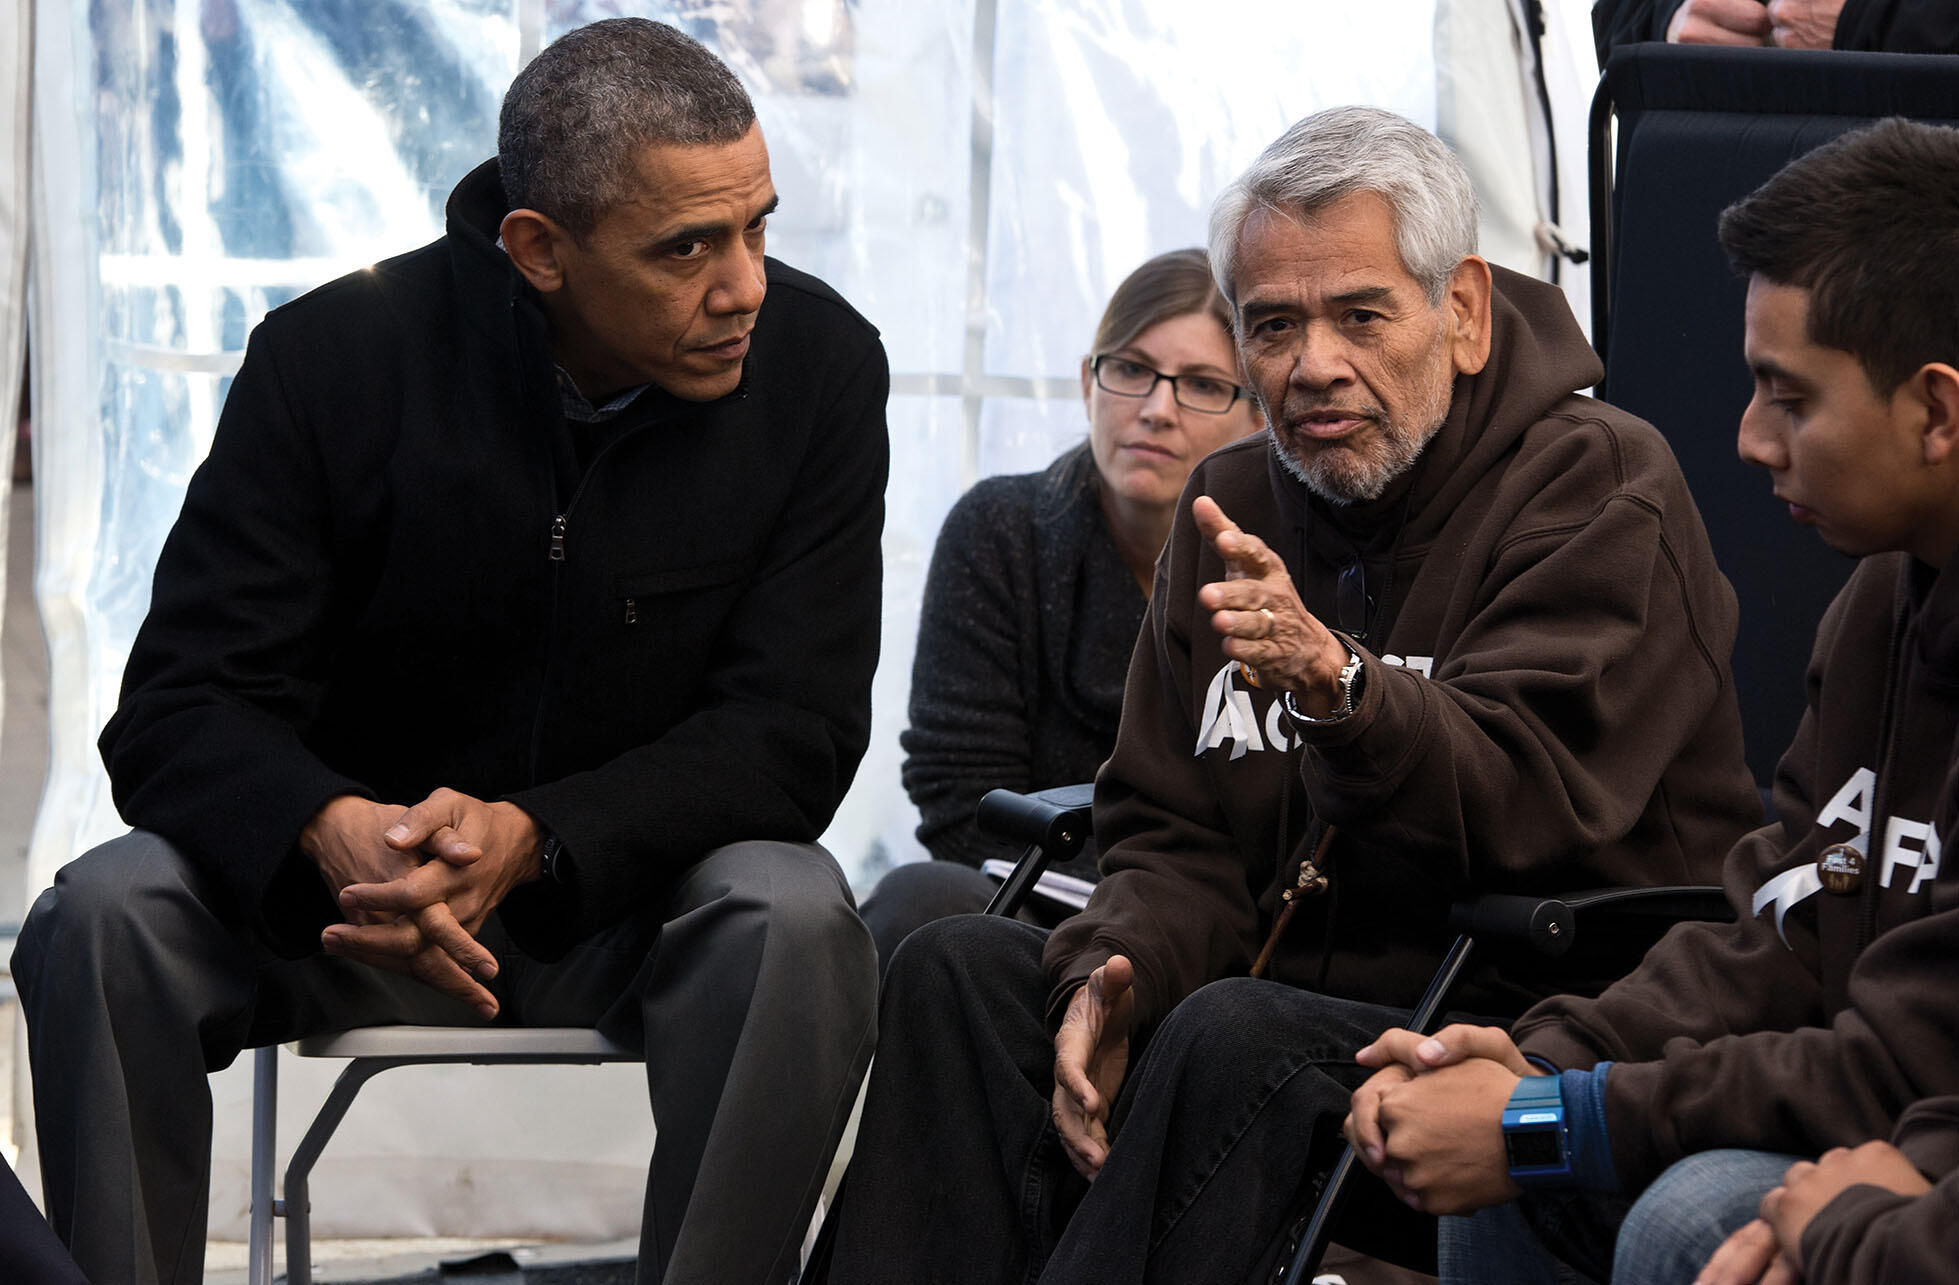 President Obama meets with Eliseo Medina, former executive vice president of the Service Employees  International Union, who was camped outside the U.S. Capitol and fasting for immigration reform, December 2013. (Photo by Nicholas Kamm/AFP/Getty Images.)